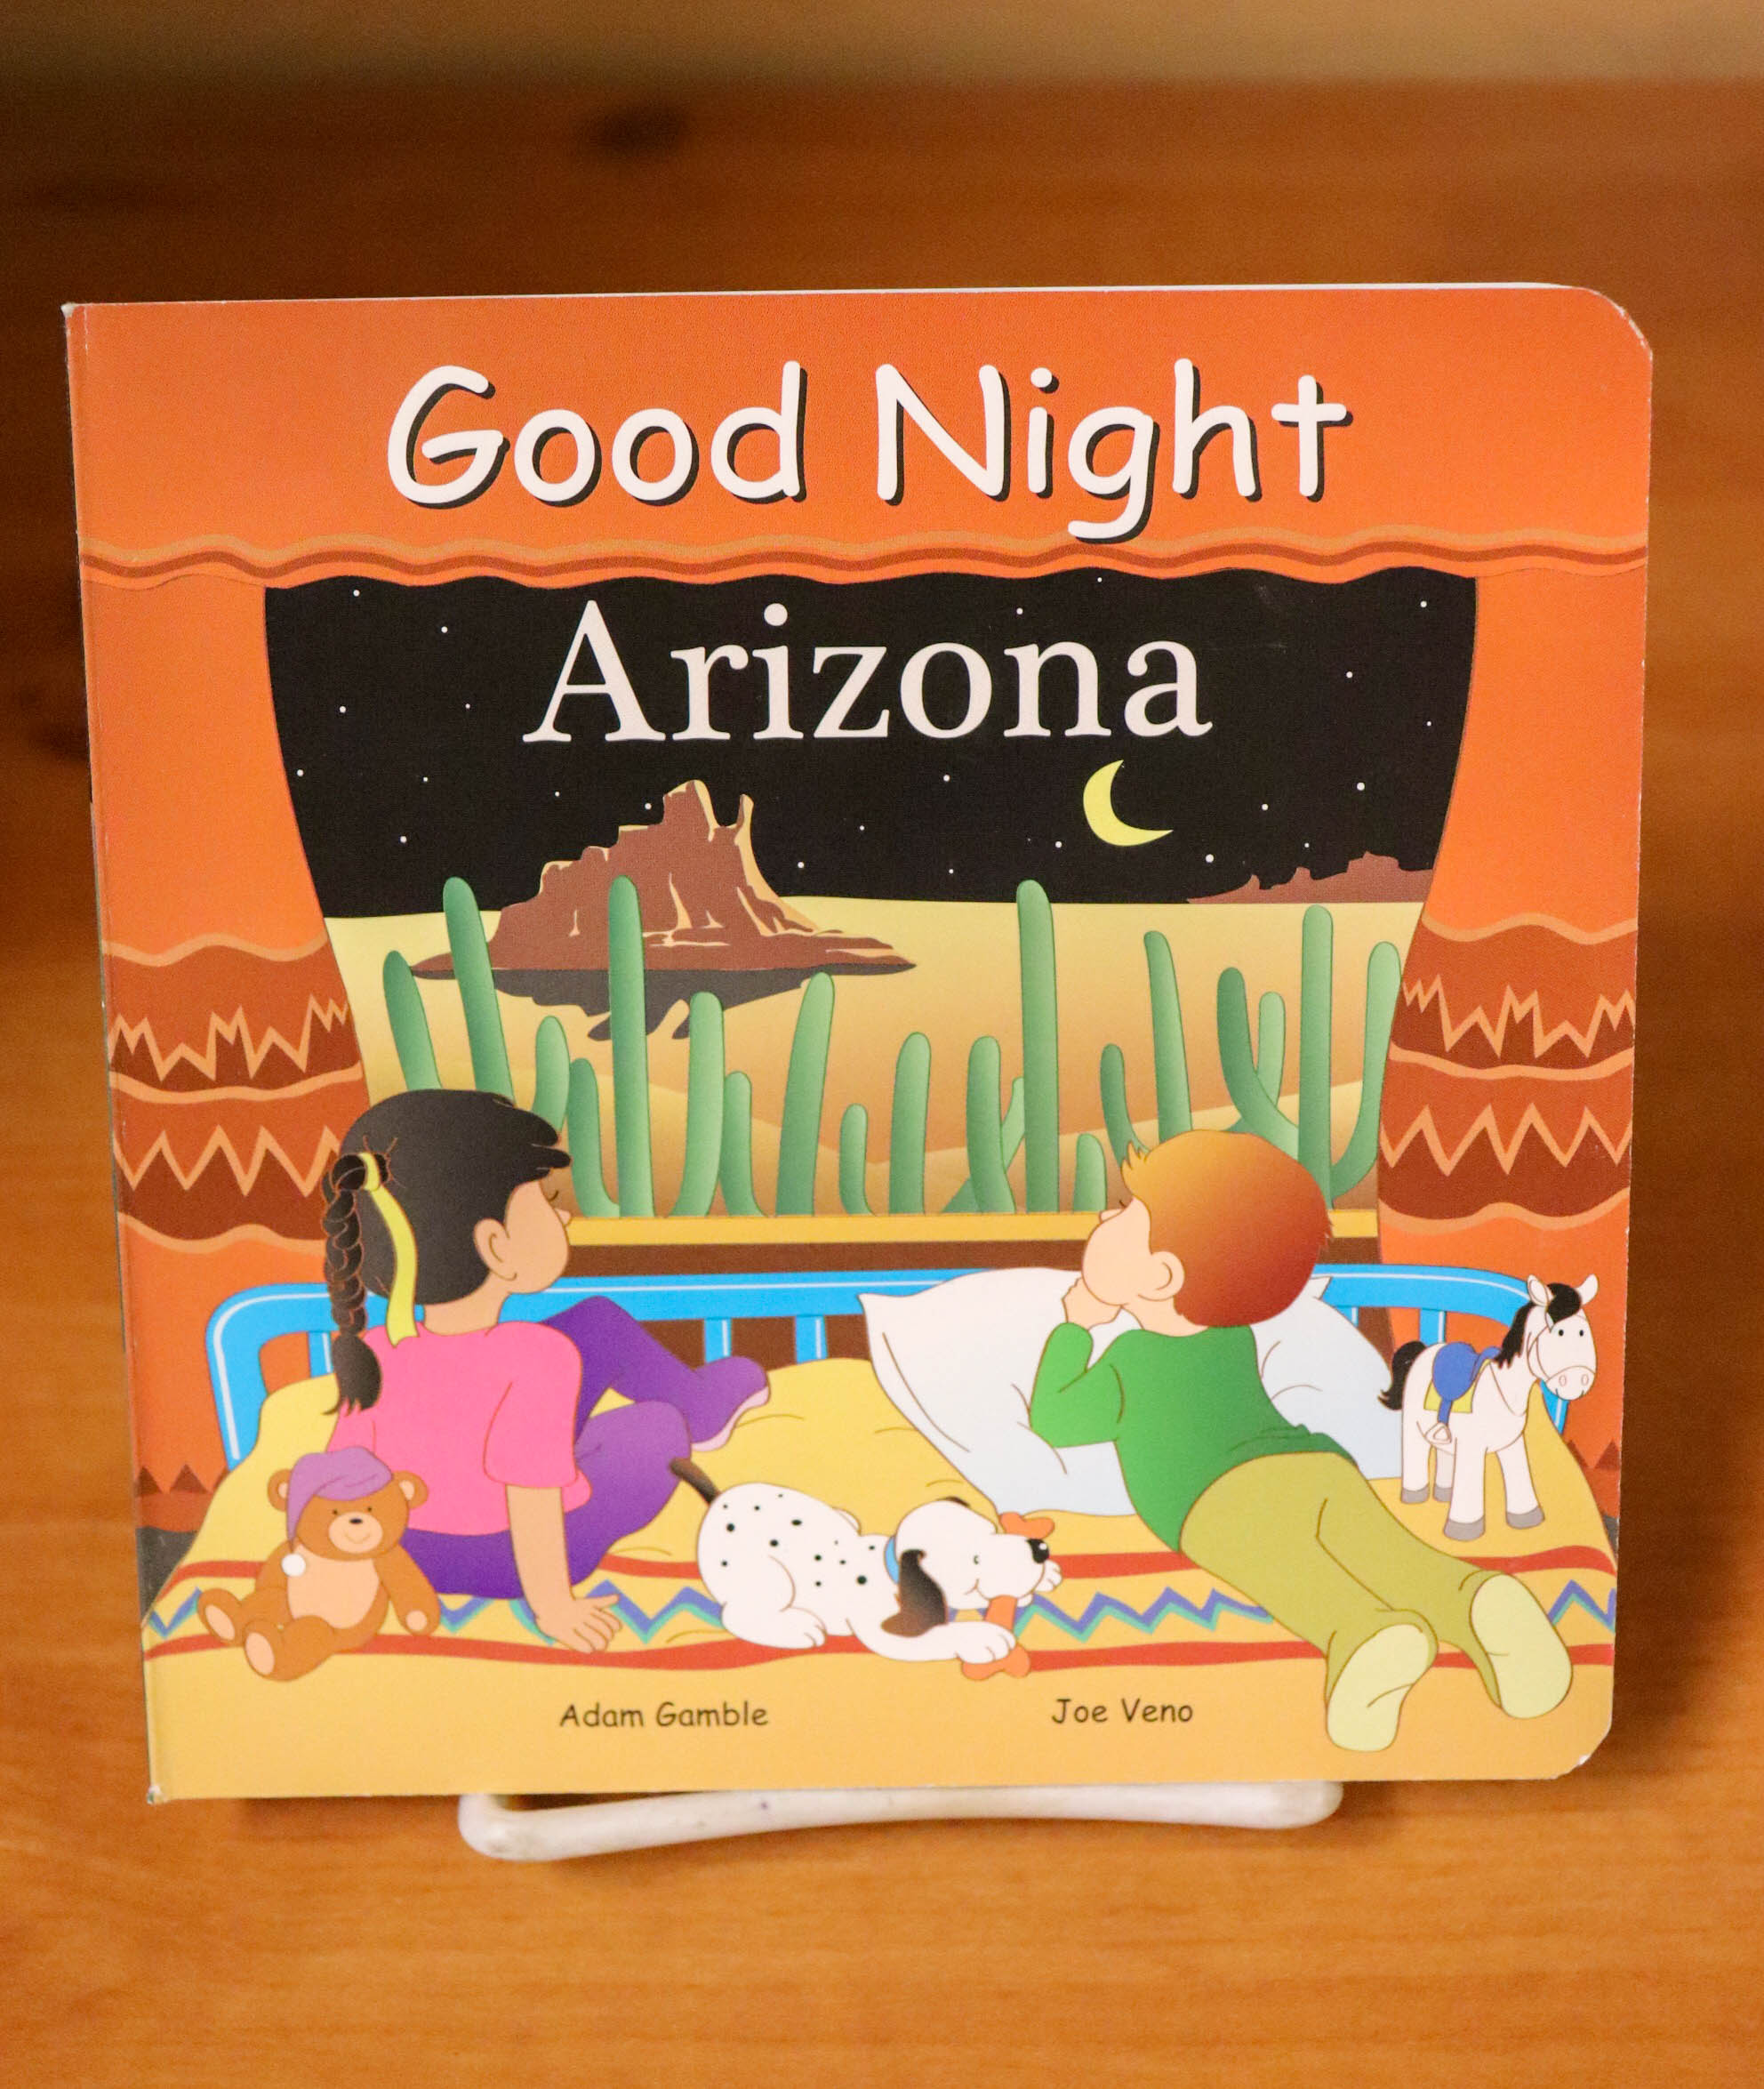 Goodnight Arizona by Adam Gamble and Joe Veno